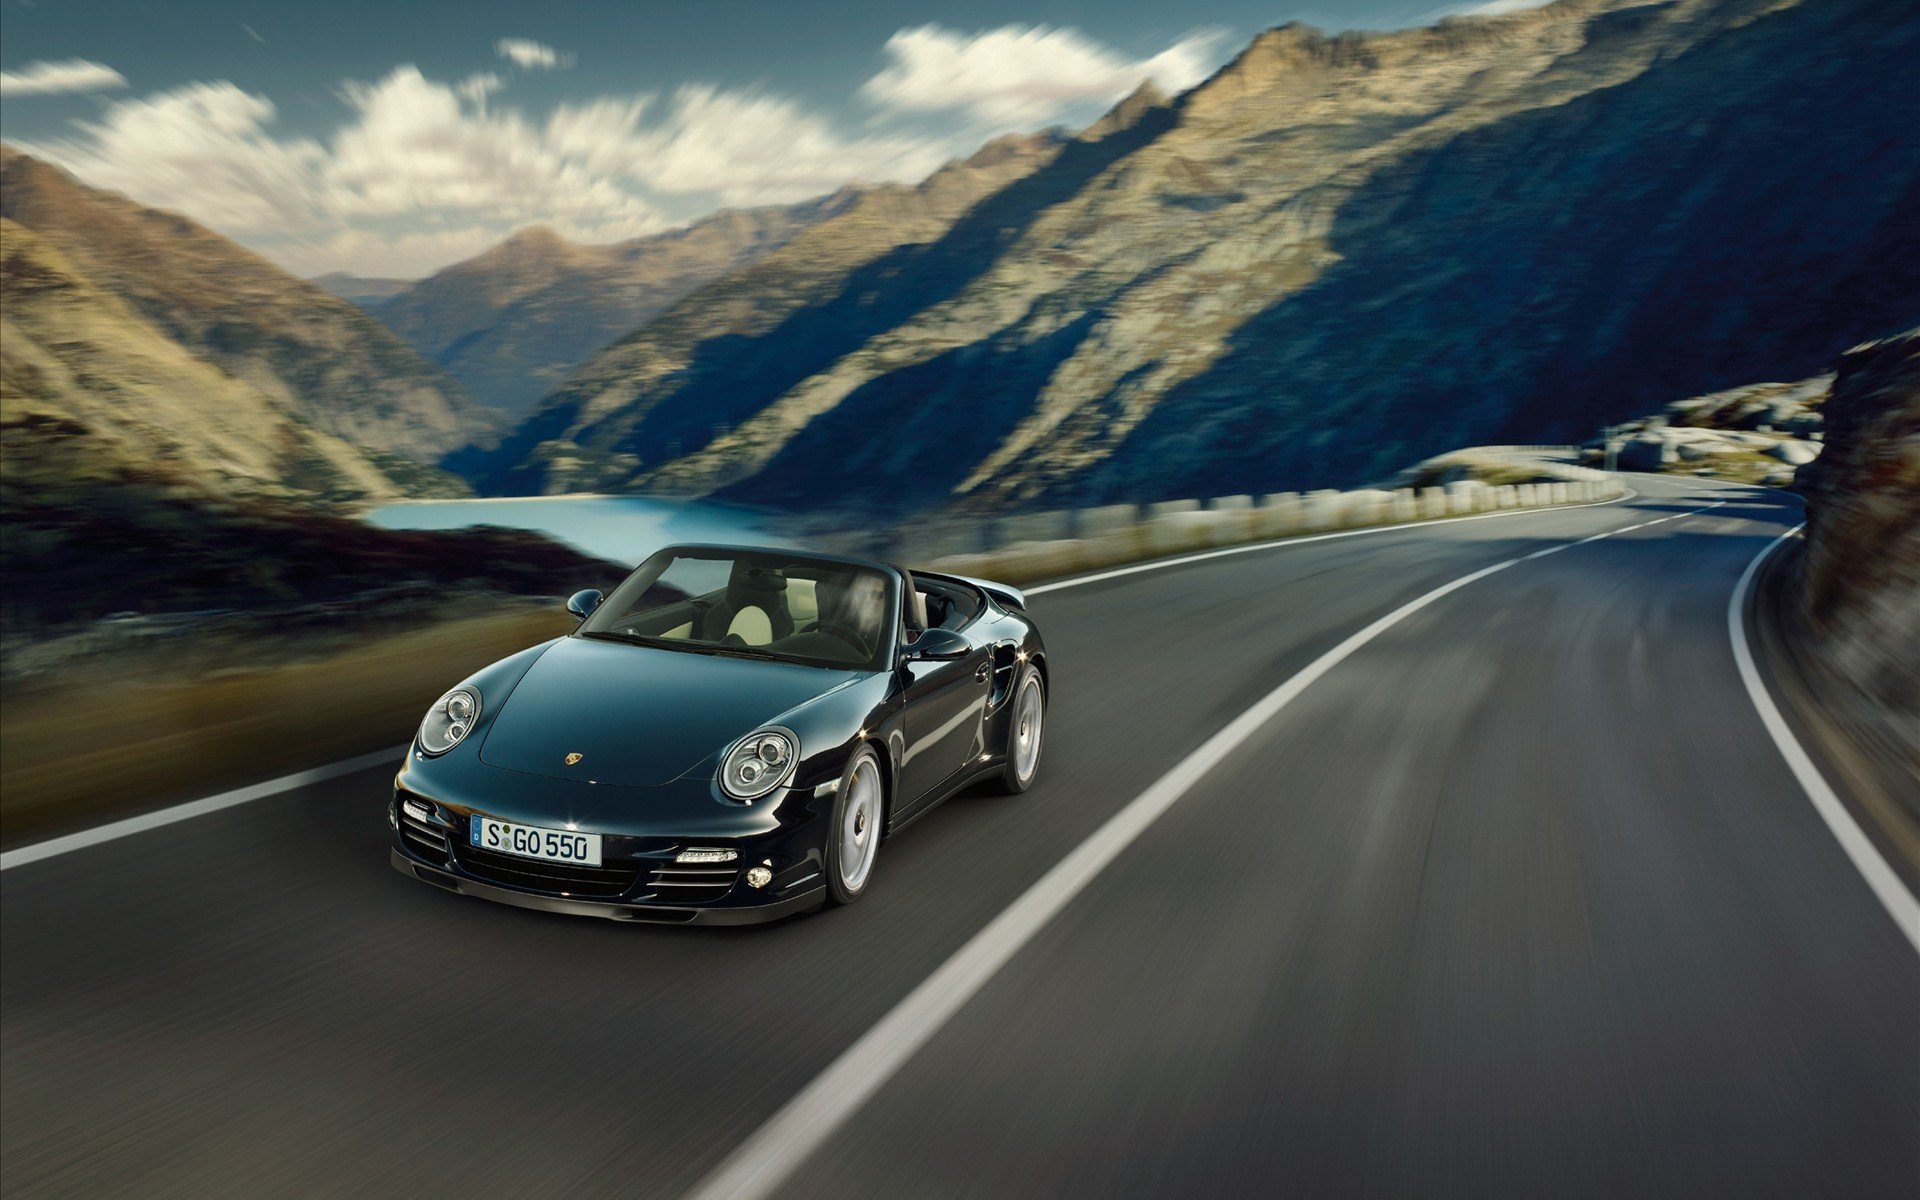 2011 porsche 911 turbo s 3 wallpapers hd wallpapers - Porsche 911 Wallpaper Widescreen